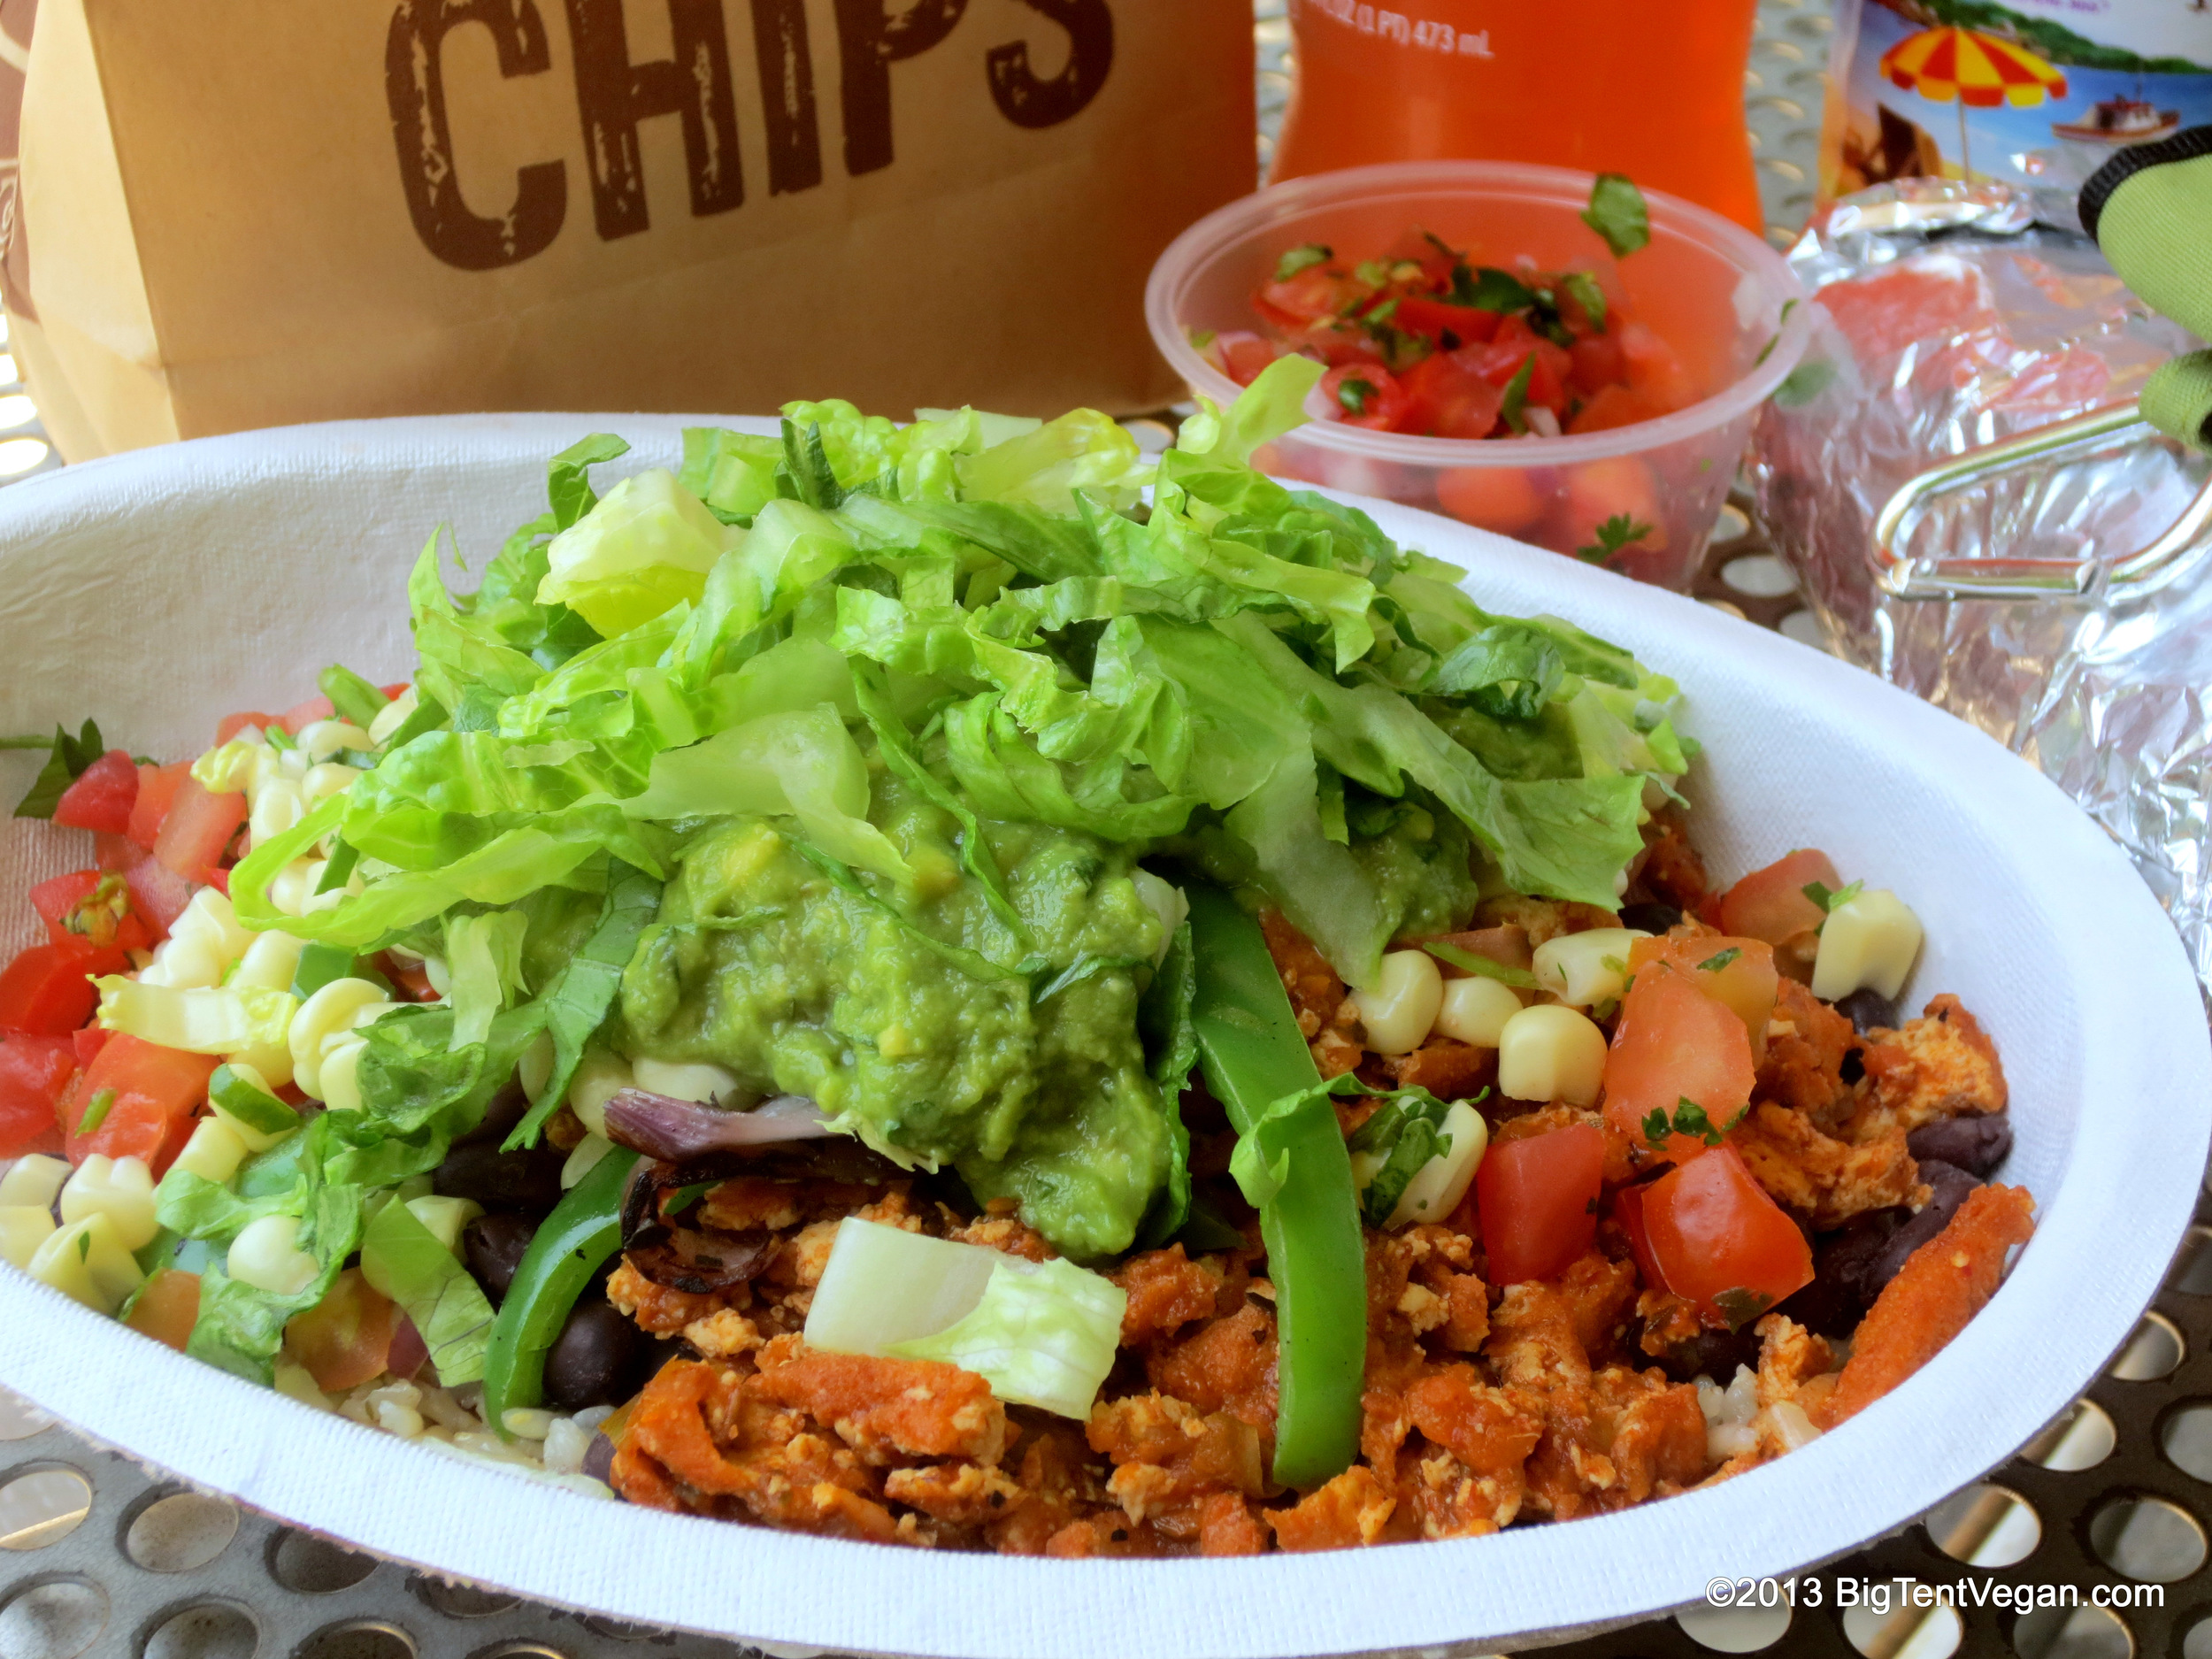 Sofritas Bowl (organic shredded tofu braised in a spicy, smoky marinade of chipotle and hatch chiles) from Chipotle (national chain restaurant)